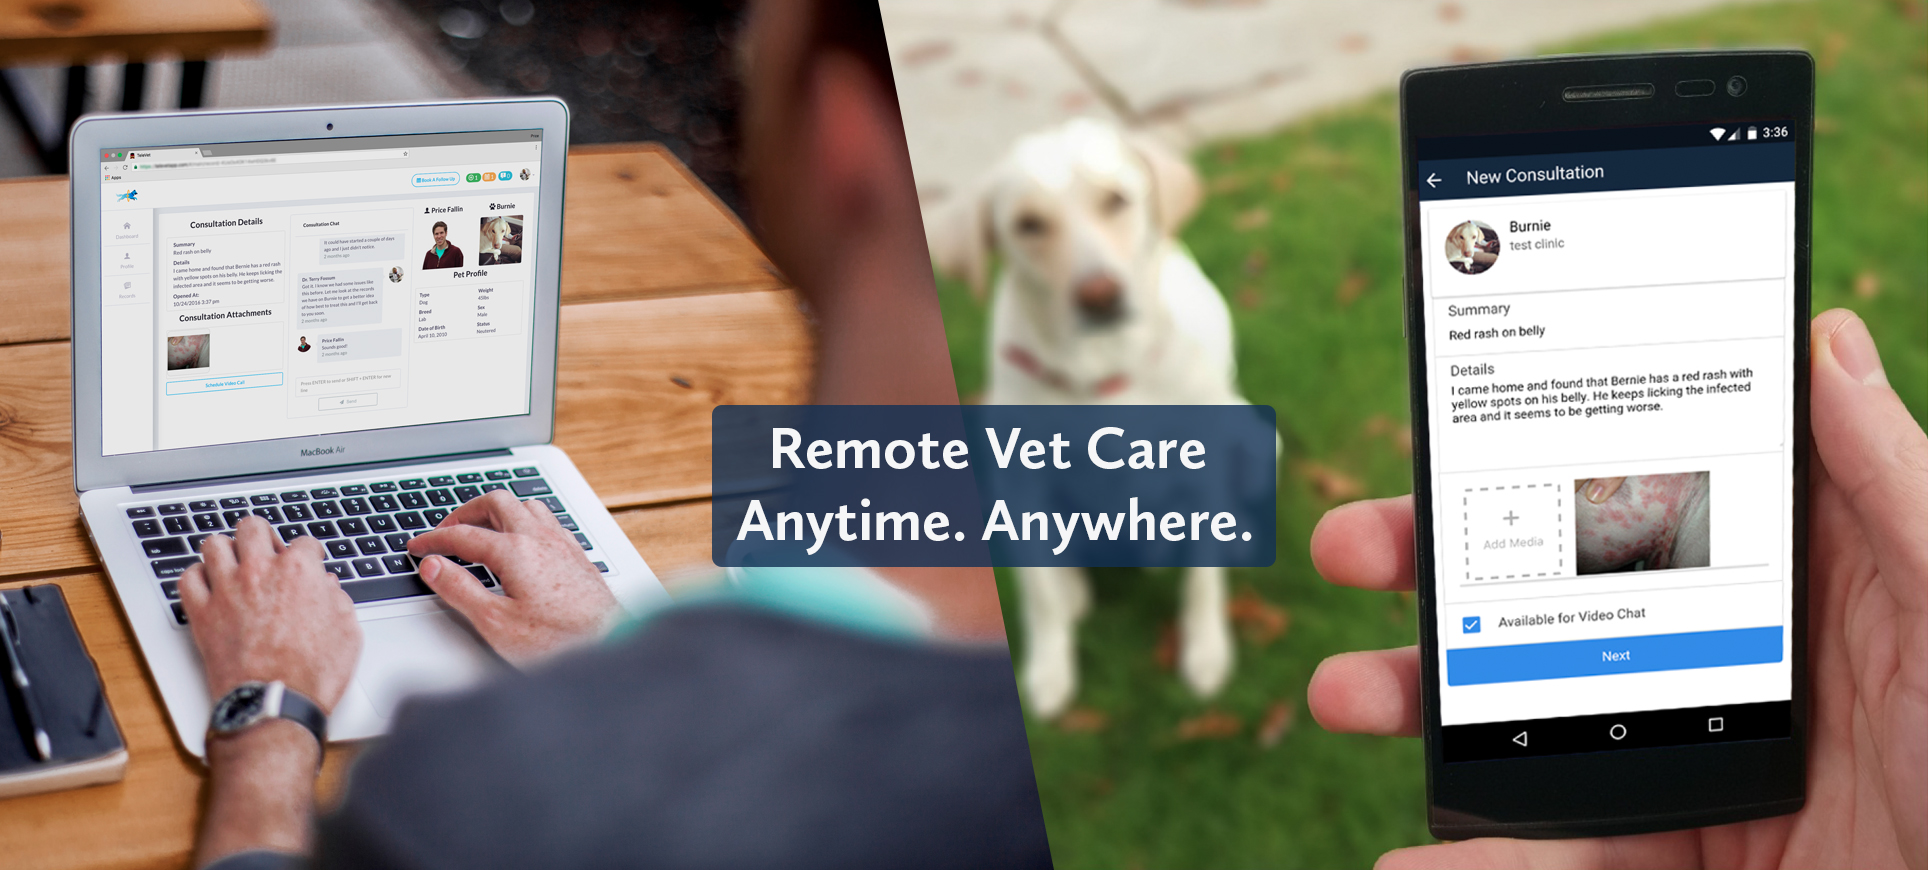 Mobile Vet Near Me Penny Paws Veterinarian Near Me Arlington Ft Worth